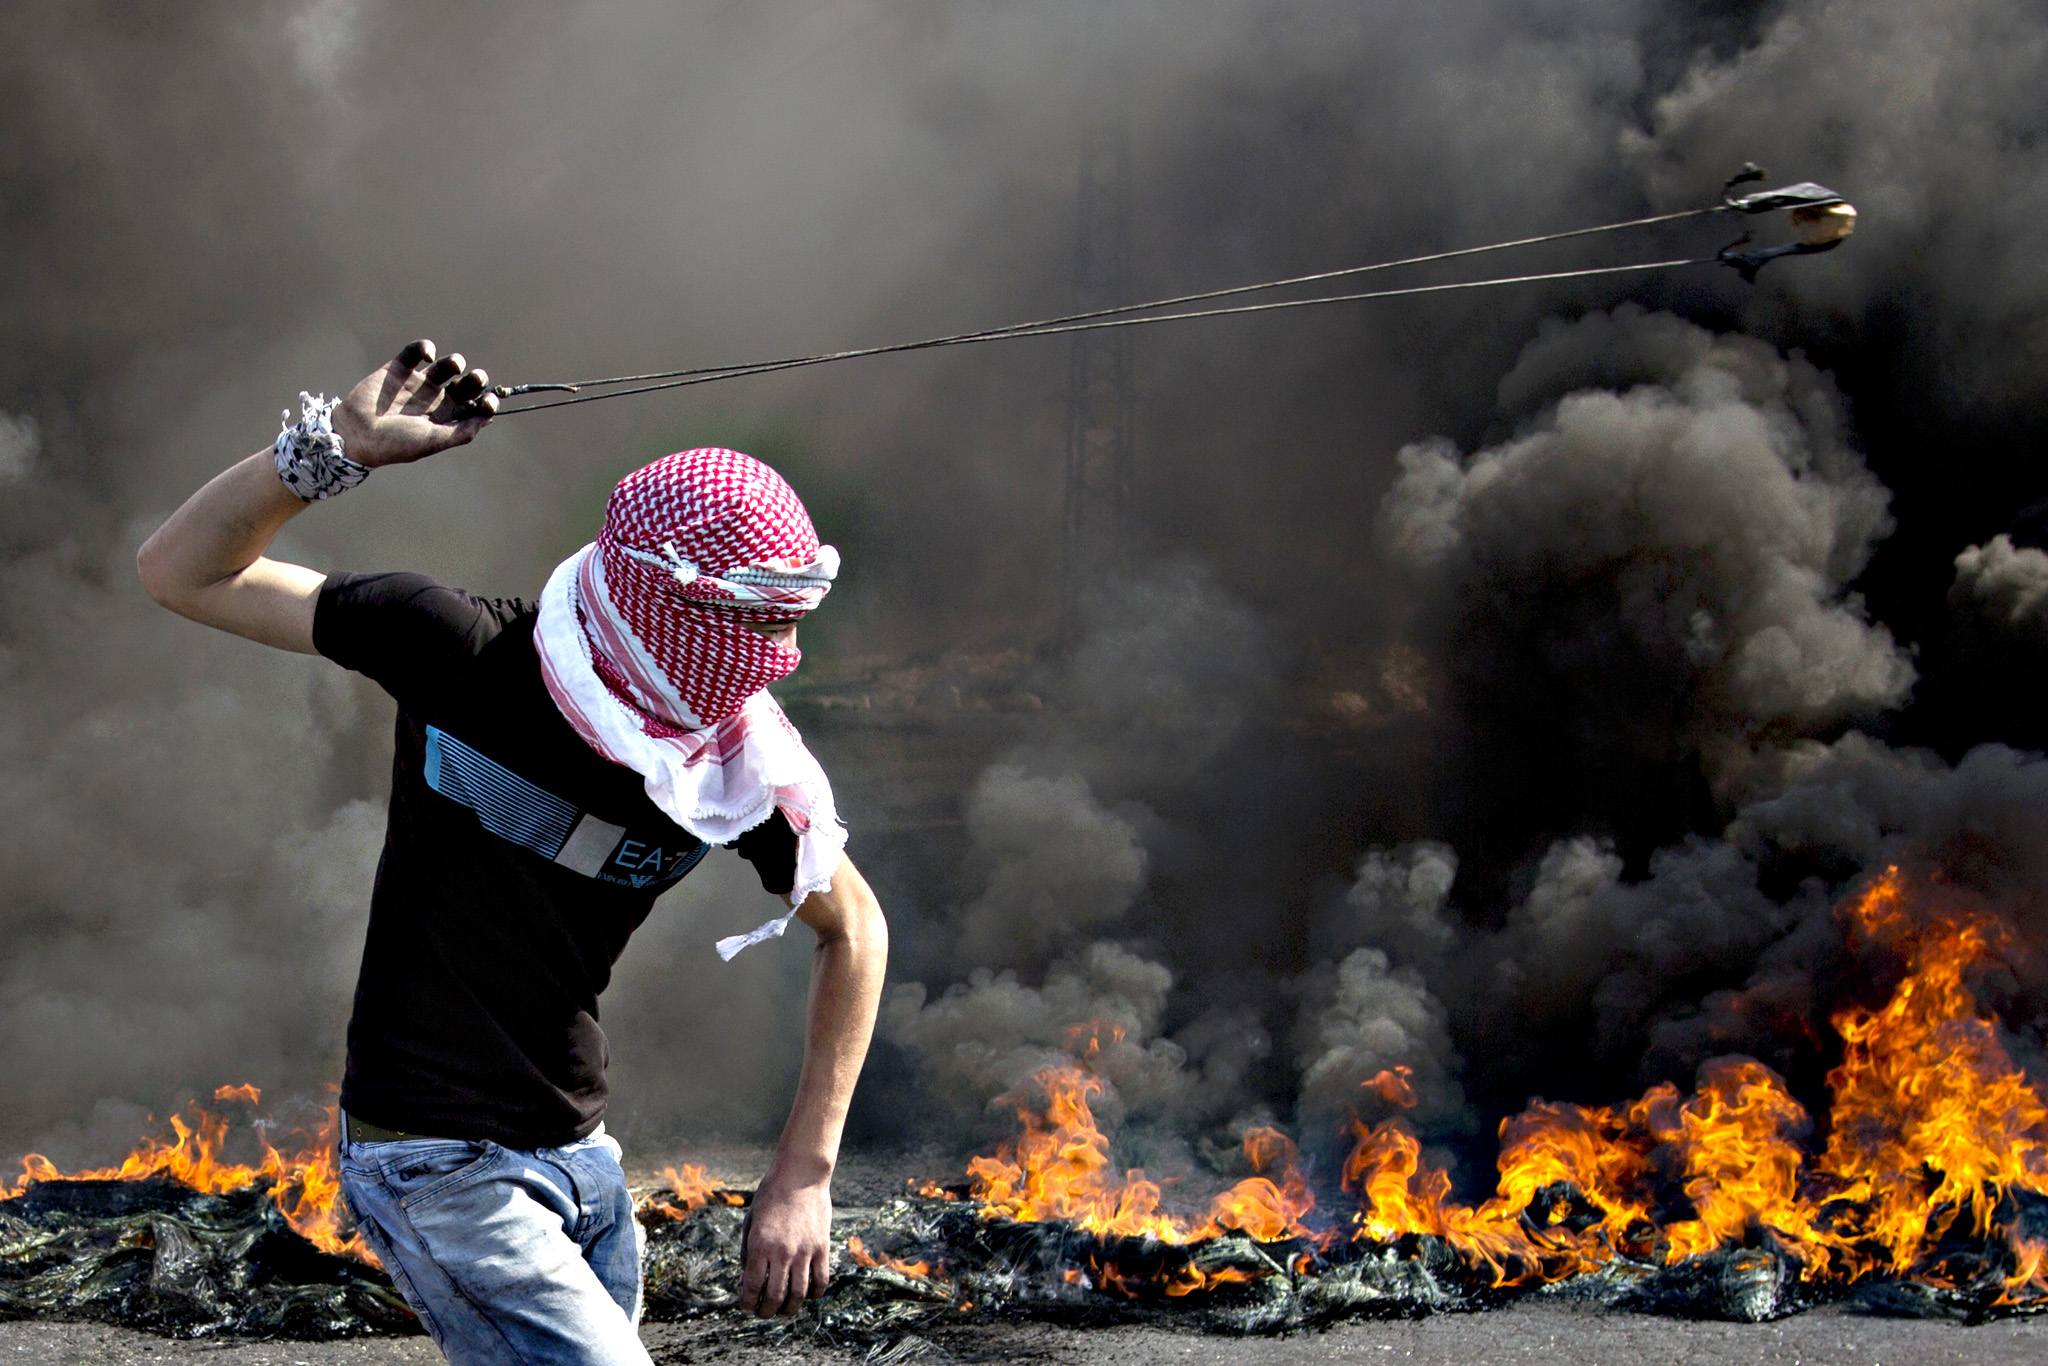 A Palestinian swings a sling during clashes with Israeli troops, near Ramallah, West Bank,  Tuesday, Oct. 20, 2015. U.N. Secretary-General Ban Ki-moon called for calm during a surprise visit to Jerusalem on Tuesday ahead of meetings with Israeli and Palestinian leaders, in a high-profile gambit to bring an end to a monthlong wave of violence